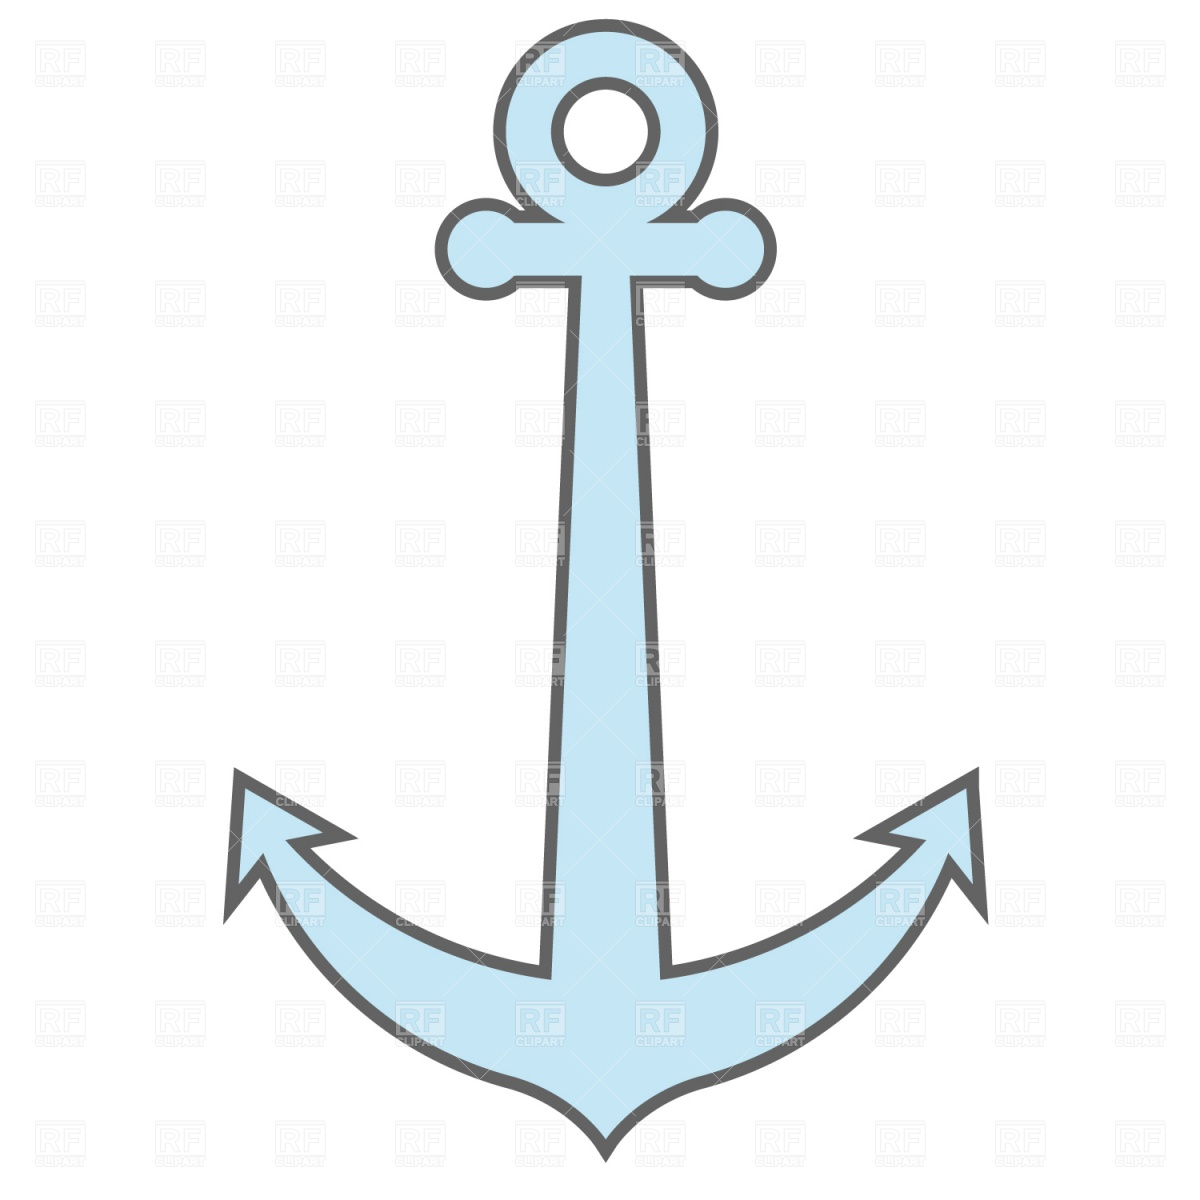 Free Pictures Of Boat Anchors, Download Free Clip Art, Free.